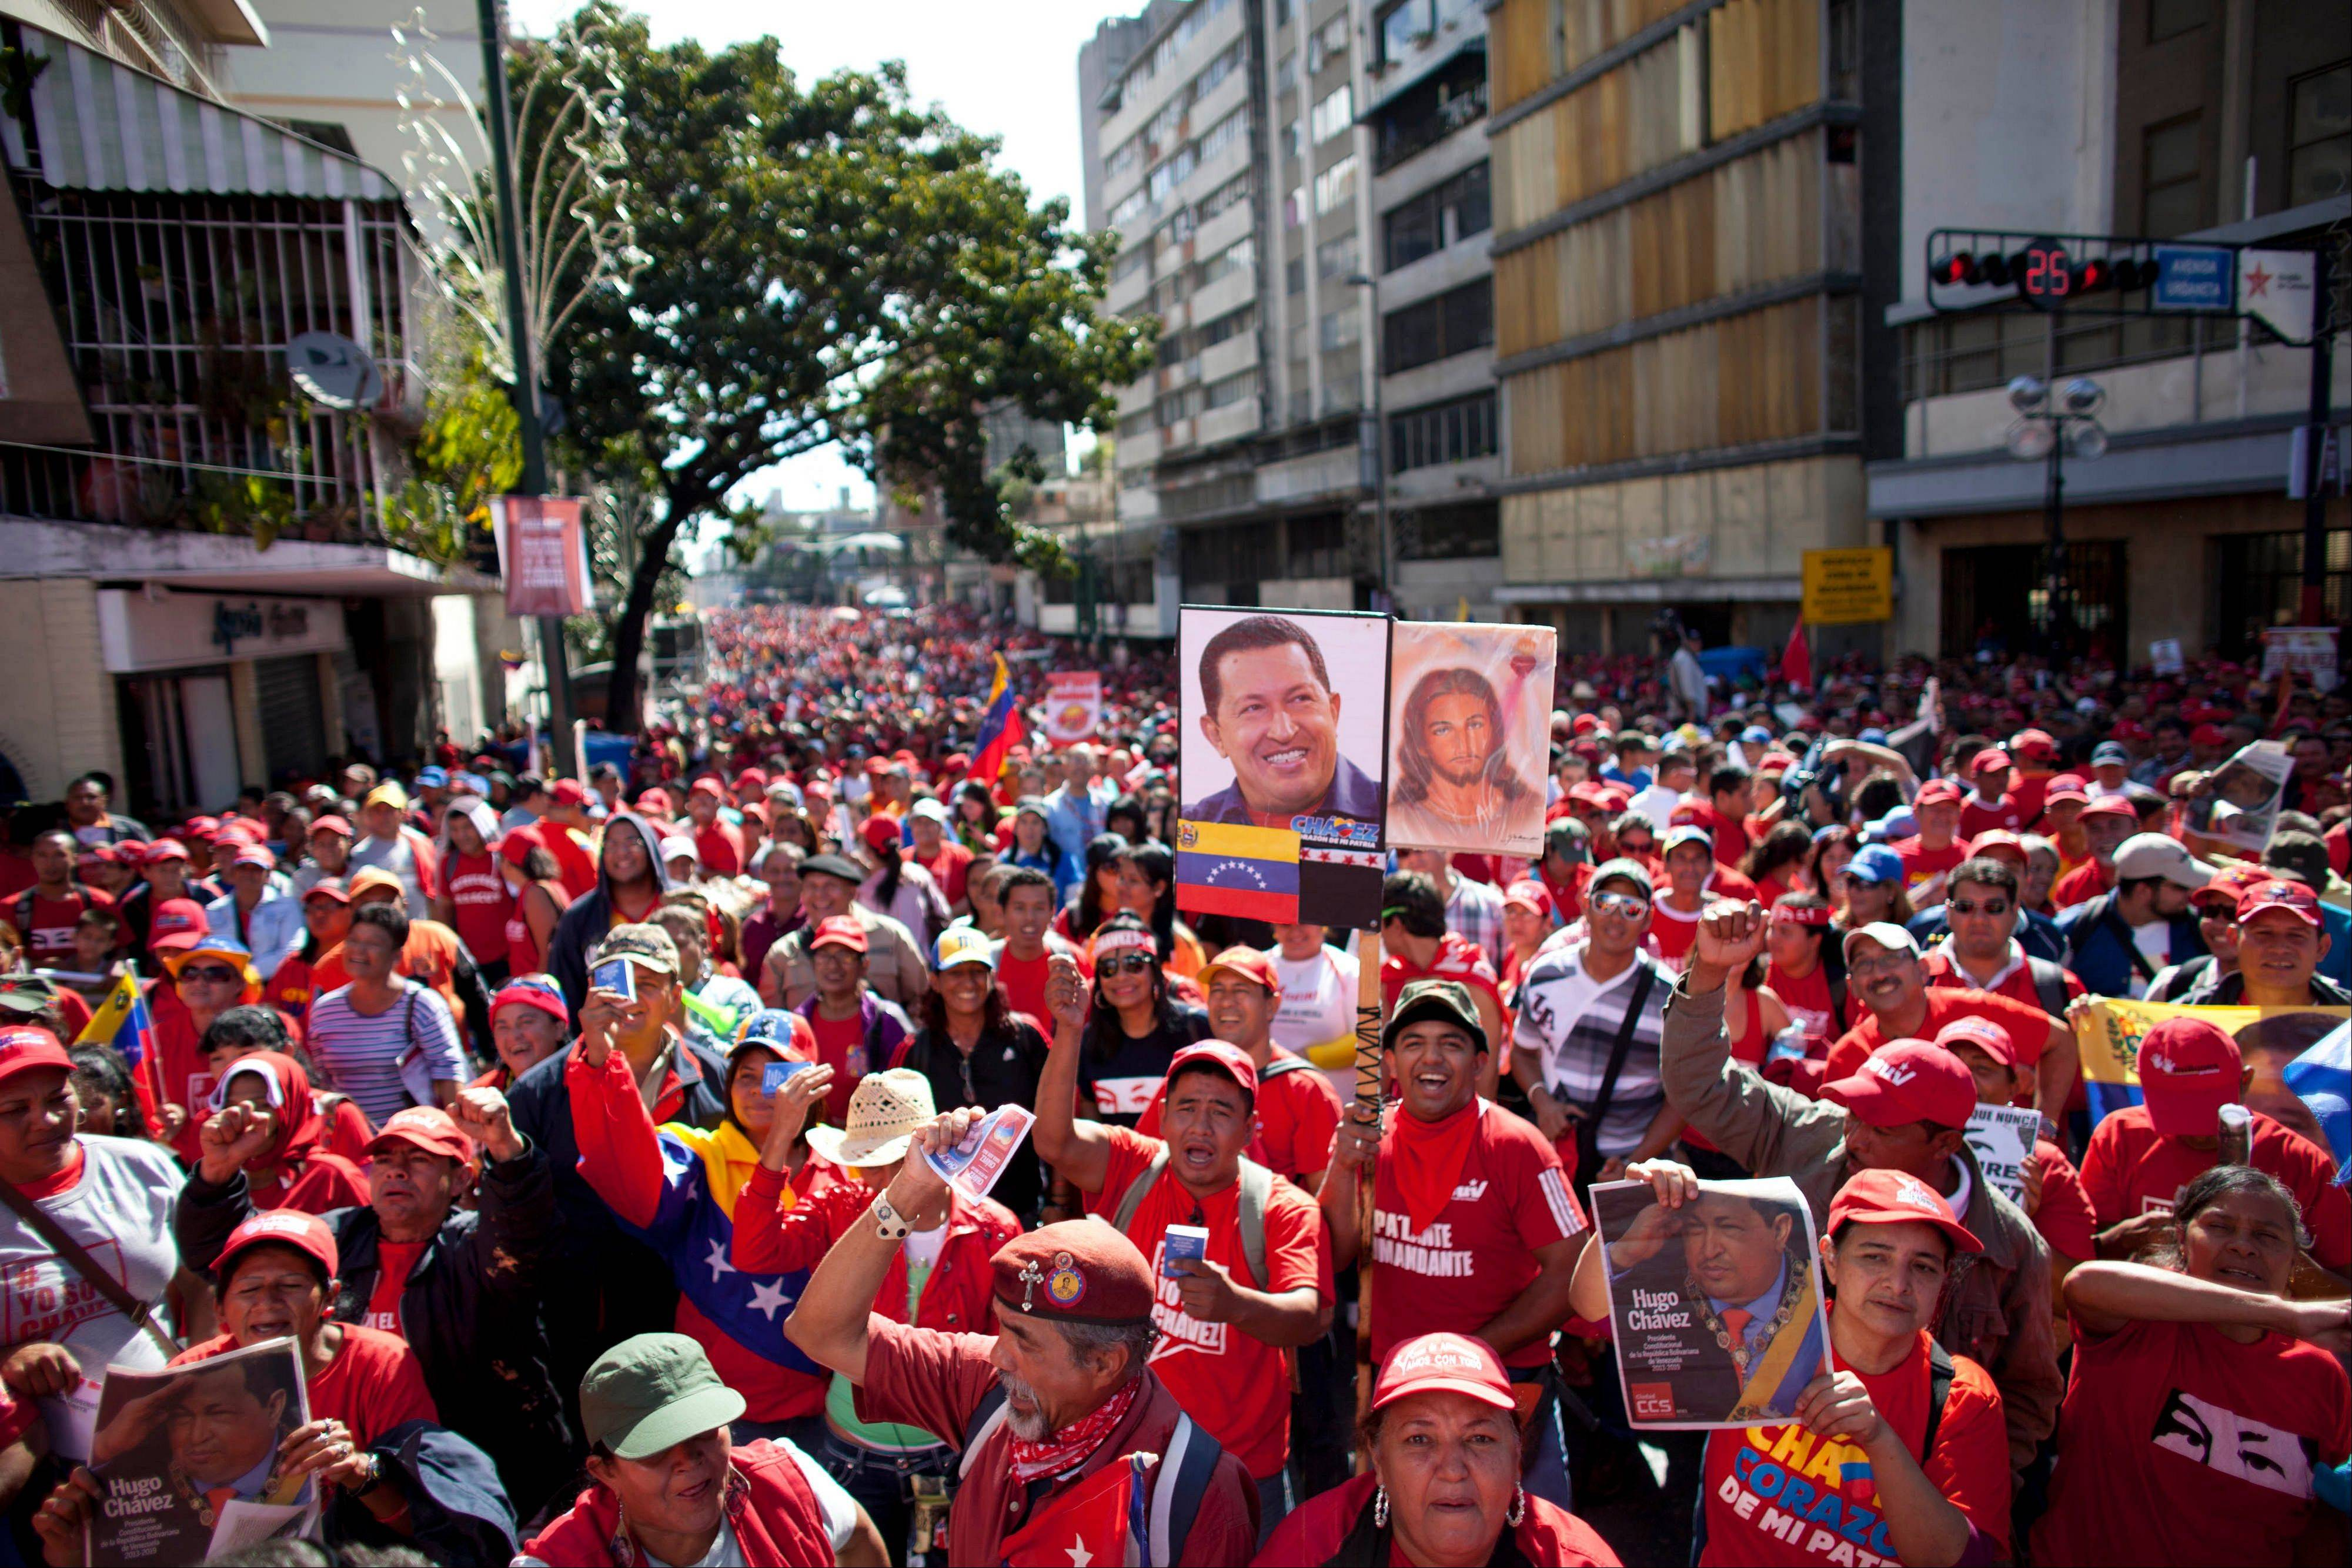 Supporters of Venezuela's President Hugo Chavez chants slogans during a rally in Caracas, Venezuela, Thursday, Jan. 10, 2013. Hundreds of cheerful supporters rallied outside his presidential palace Thursday in an alternative inauguration for a leader too ill to return home for the real thing.